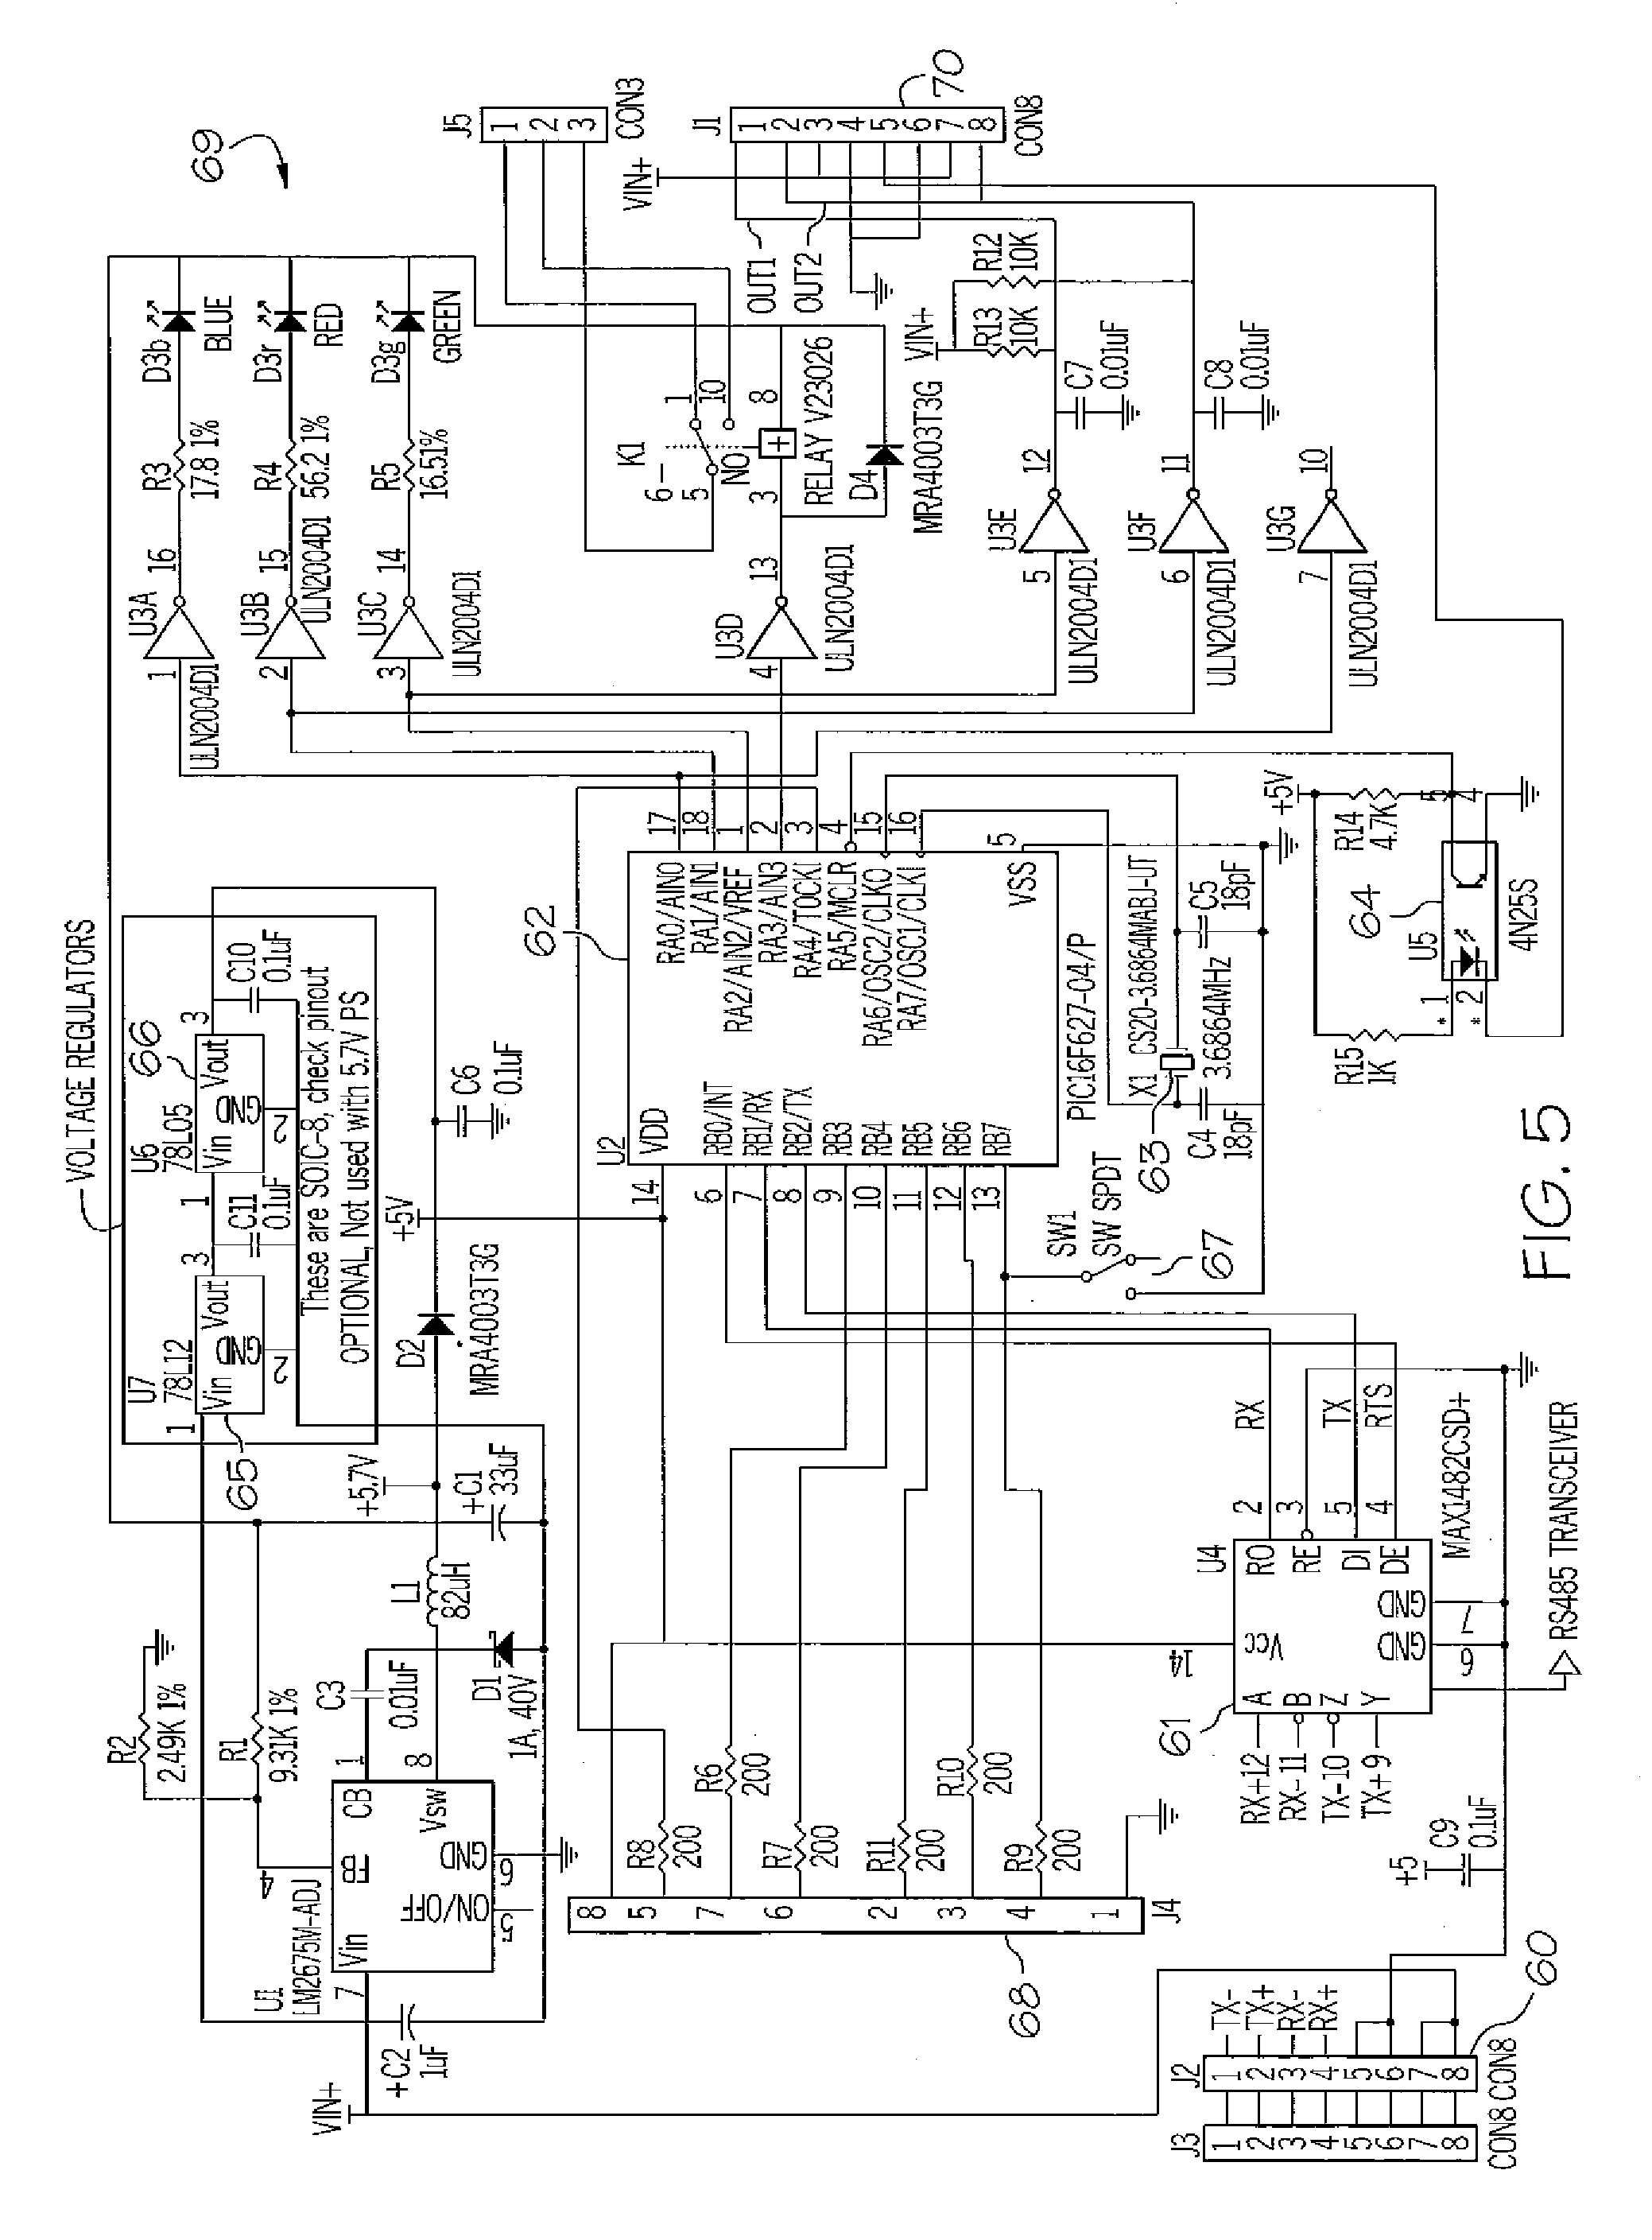 Bogen Paging System Wiring Diagram And Engine Intercom Systems Catalog Product S86t725pg8wvk Likewise Ptt To Puter Information Together With Old Telephone Diagrams Also